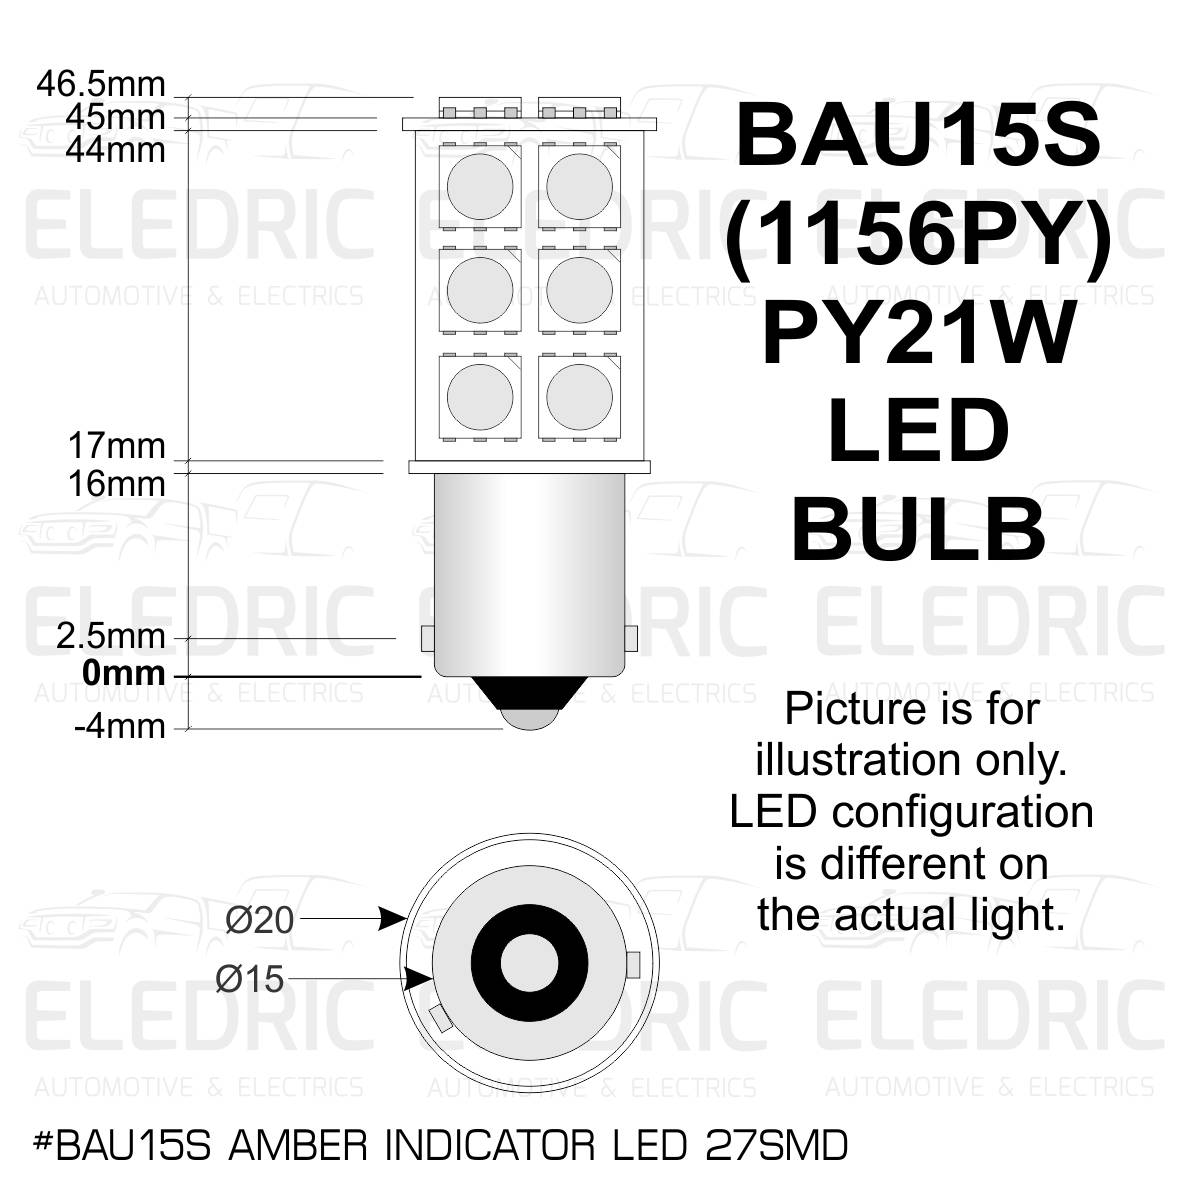 E Led Bau15s Py Py21w Led 27smd Amber Indicator 01